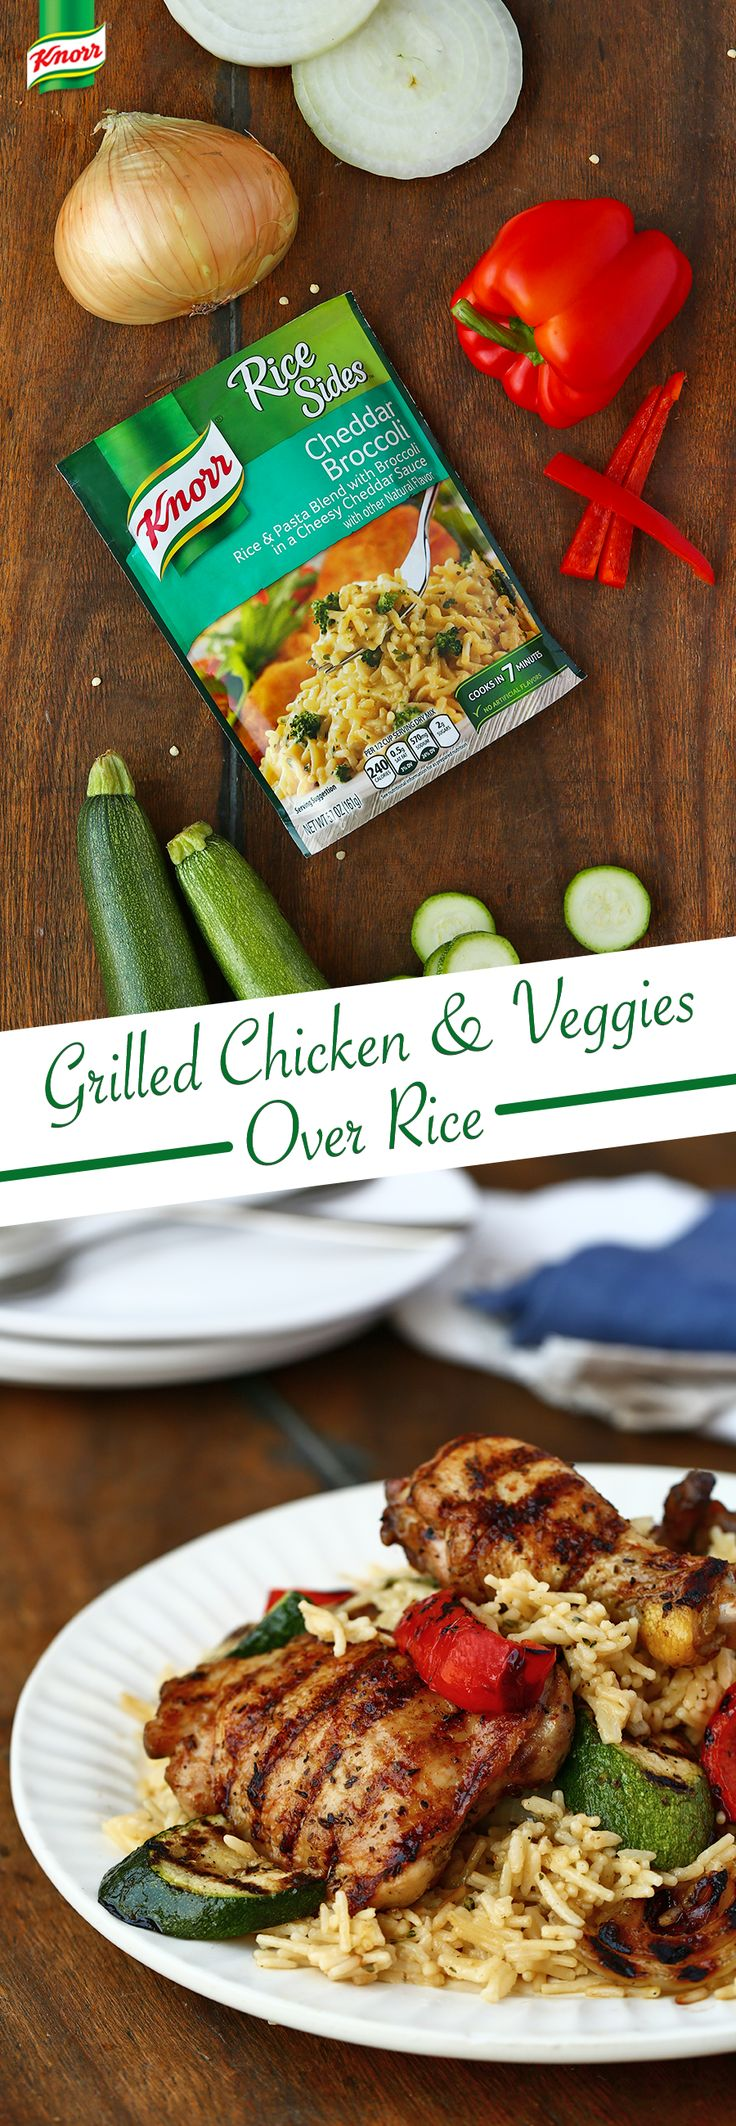 Knorr's recipe for easy Grilled Chicken & Veggies Over Rice is your family's new favorite dinner. Follow these steps for delicious flavor: 1. Blend butter spread with Italian seasoning in a small bowl 2. Brush chicken and vegetables with the mixture 3. Grill or broil meat and vegetables until cooked and tender 4. Serve with hot Knorr® Rice Sides™ - Cheddar Broccoli